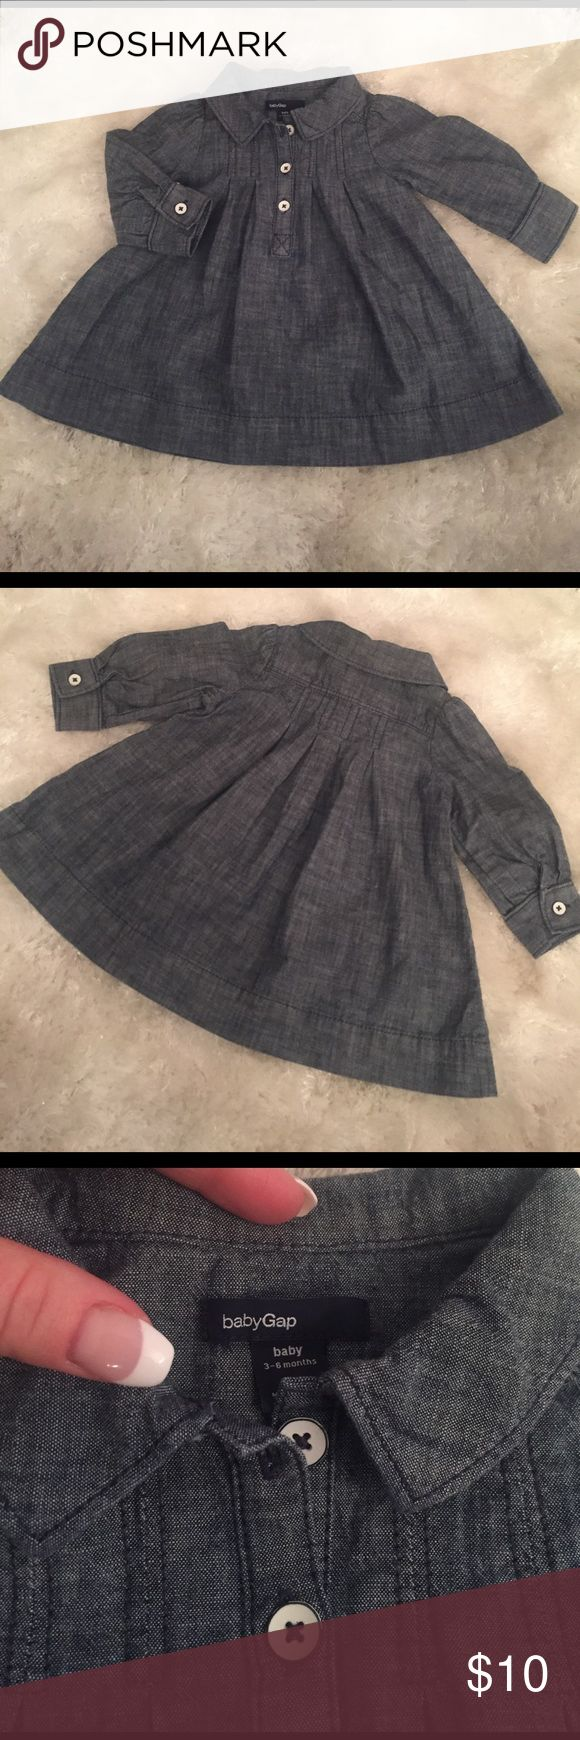 NWOT.  babyGap lightweight denim floaty dress Just too cute🎀 Light weight babyGap denim dress with collar. Comfy denim with 3 white buttons down the front. Size 3-6 months. Precious with leggings or tights. New with out tags. Never worn. GAP Dresses Casual